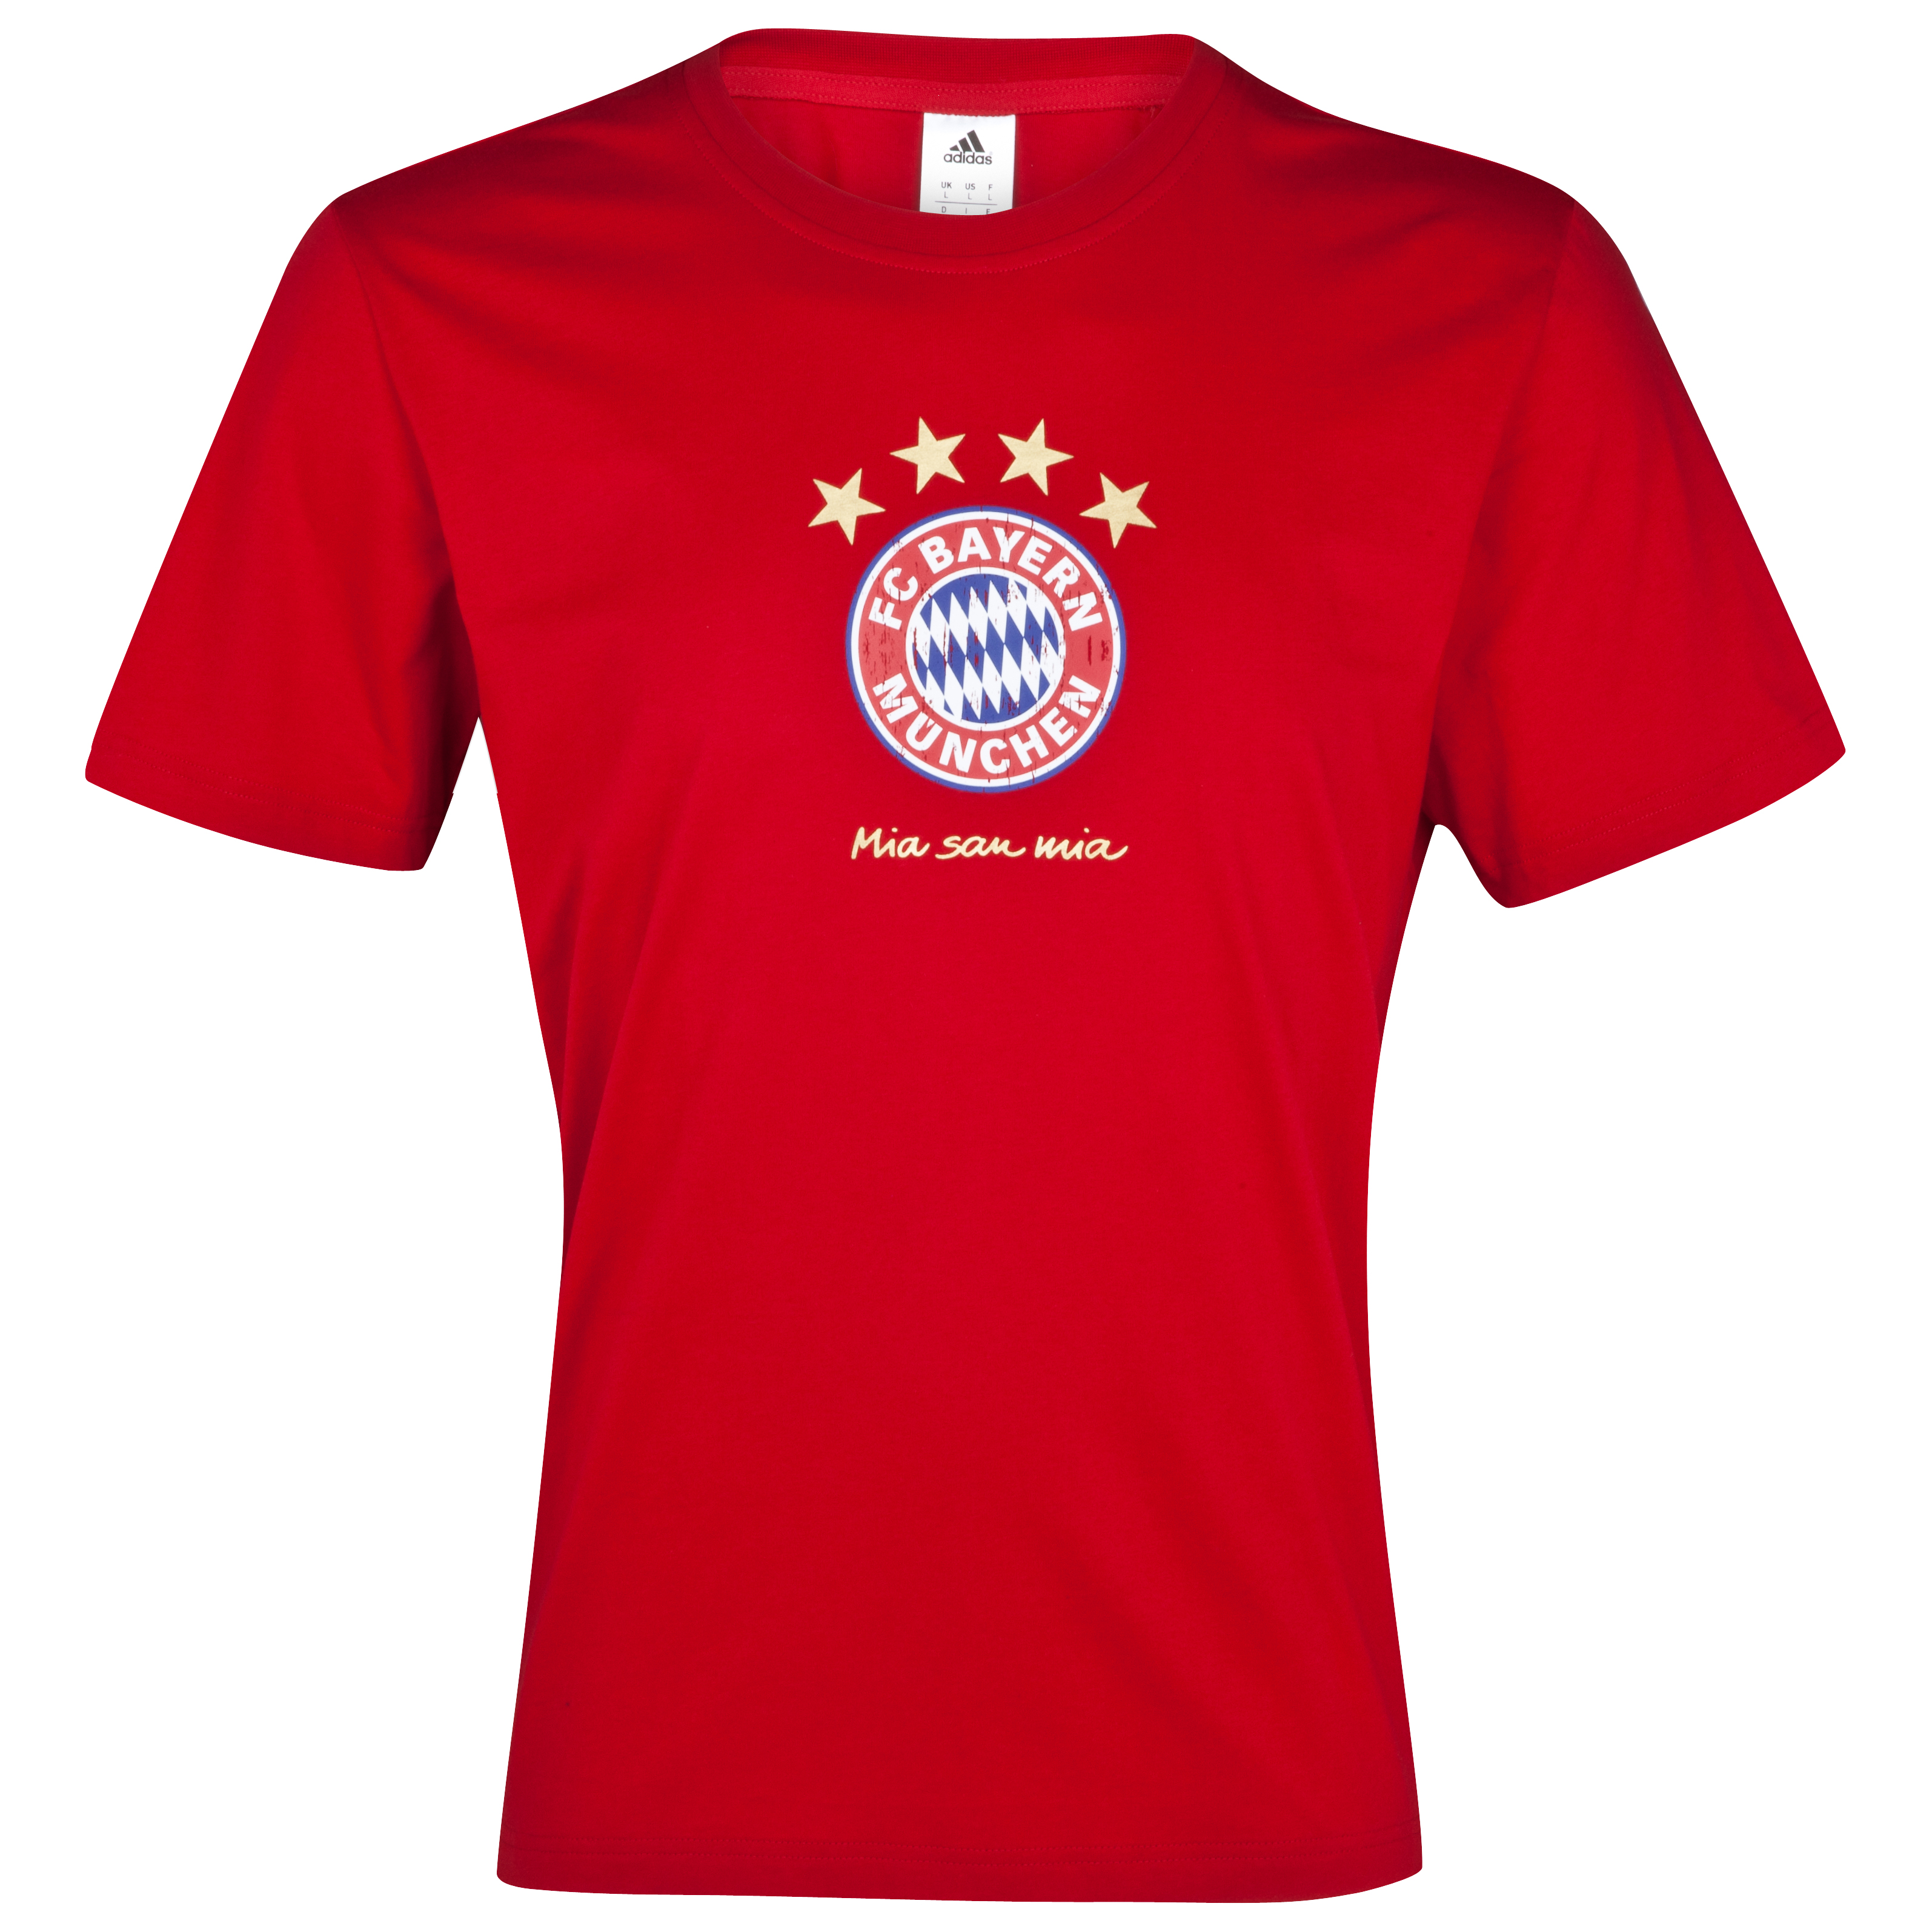 Bayern Munich Graphic T-Shirt - University Red